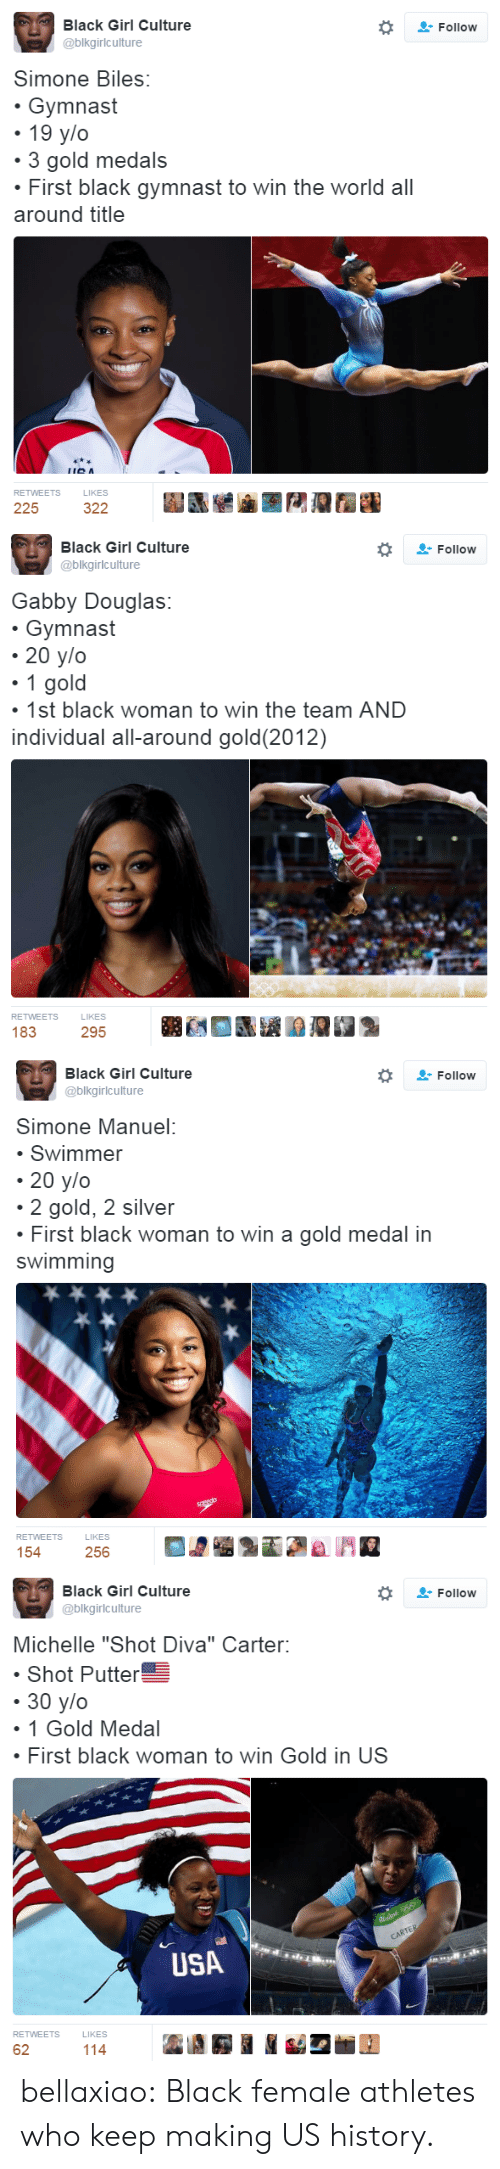 "female athletes: Black Girl Culture  Follow  @blkgirlculture  Simone Biles:  Gymnast  19 y/o  3 gold medals  First black gymnast to win the world all  around title  RETWEETS  LIKES  225  322   Black Girl Culture  @blkgirlculture  Follow  Gabby Douglas:  Gymnast  20 y/o  1 gold  1st black woman to win the team AND  individual all-around gold(2012)  RETWEETS  LIKES  183  295   Black Girl Culture  Follow  @blkgirlculture  Simone Manuel:  Swimmer  20 y/o  2 gold, 2 silver  First black woman to win a gold medal in  swimming  soeedo  RETWEETS  LIKES  154  256   Black Girl Culture  Follow  @blkgirlculture  Michelle ""Shot Diva"" Carter:  Shot Putter  30 y/o  1 Gold Medal  First black woman to win Gold in US  CARTER  USA  RETWEETS  LIKES  62  114 bellaxiao:  Black female athletes who keep making US history."